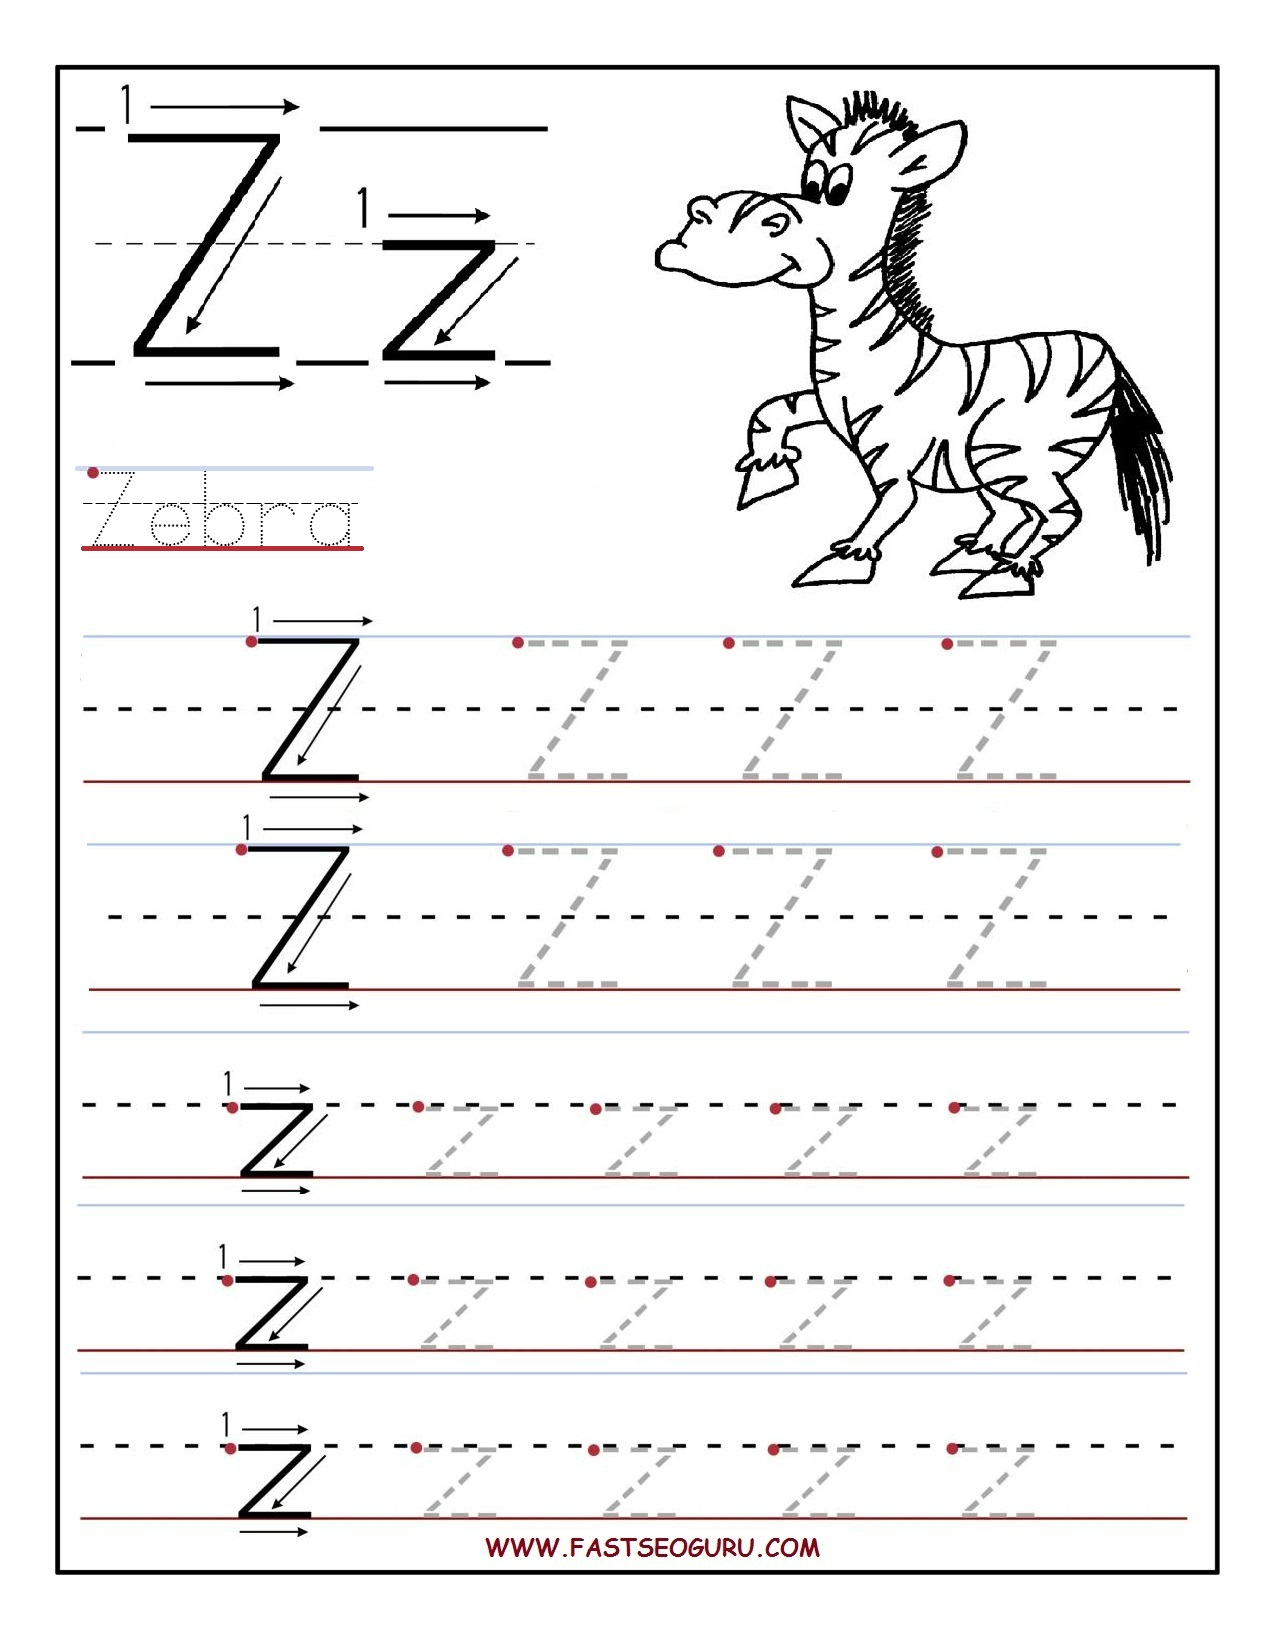 Printable Letter Tracing Worksheets For Preschool To regarding Letter U Tracing Worksheets Preschool